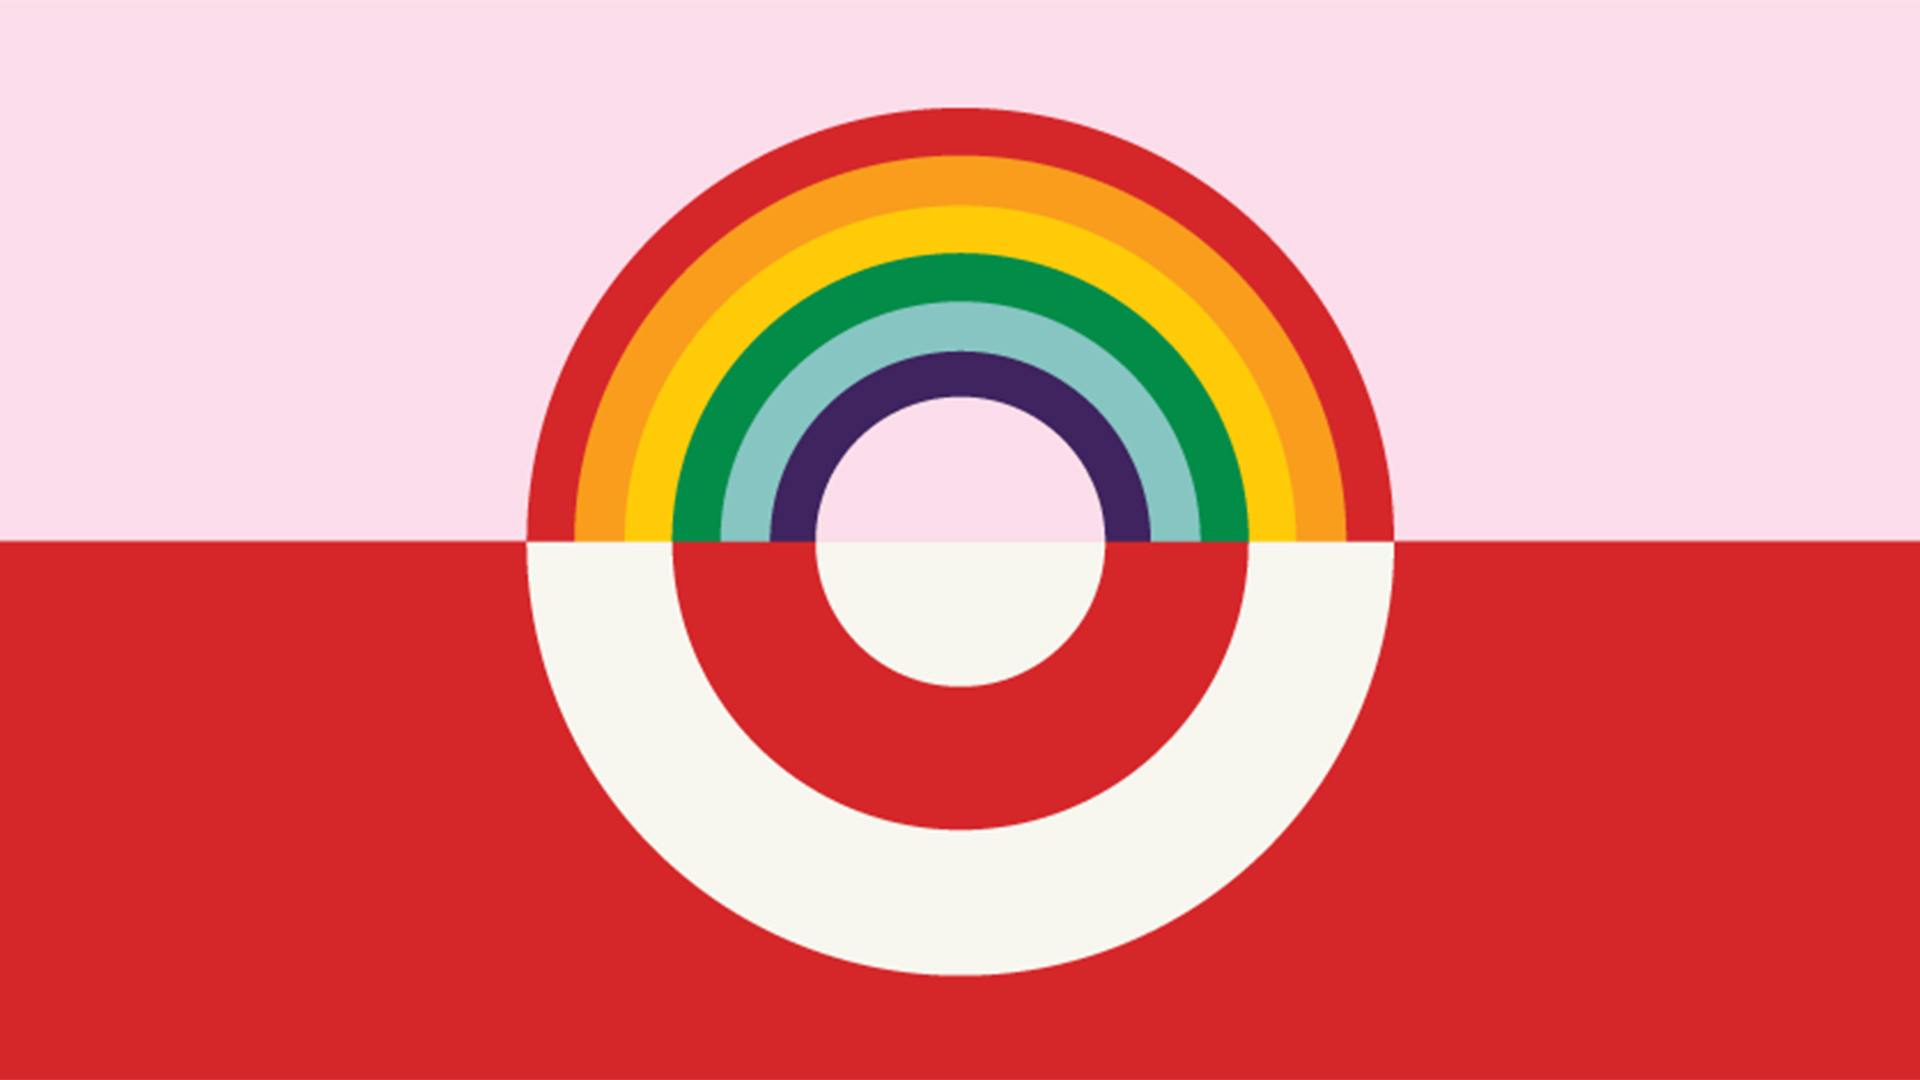 More Birth Certificate Questions Raised >> Target takes an 'inclusive' stand on transgender bathroom debate - TODAY.com